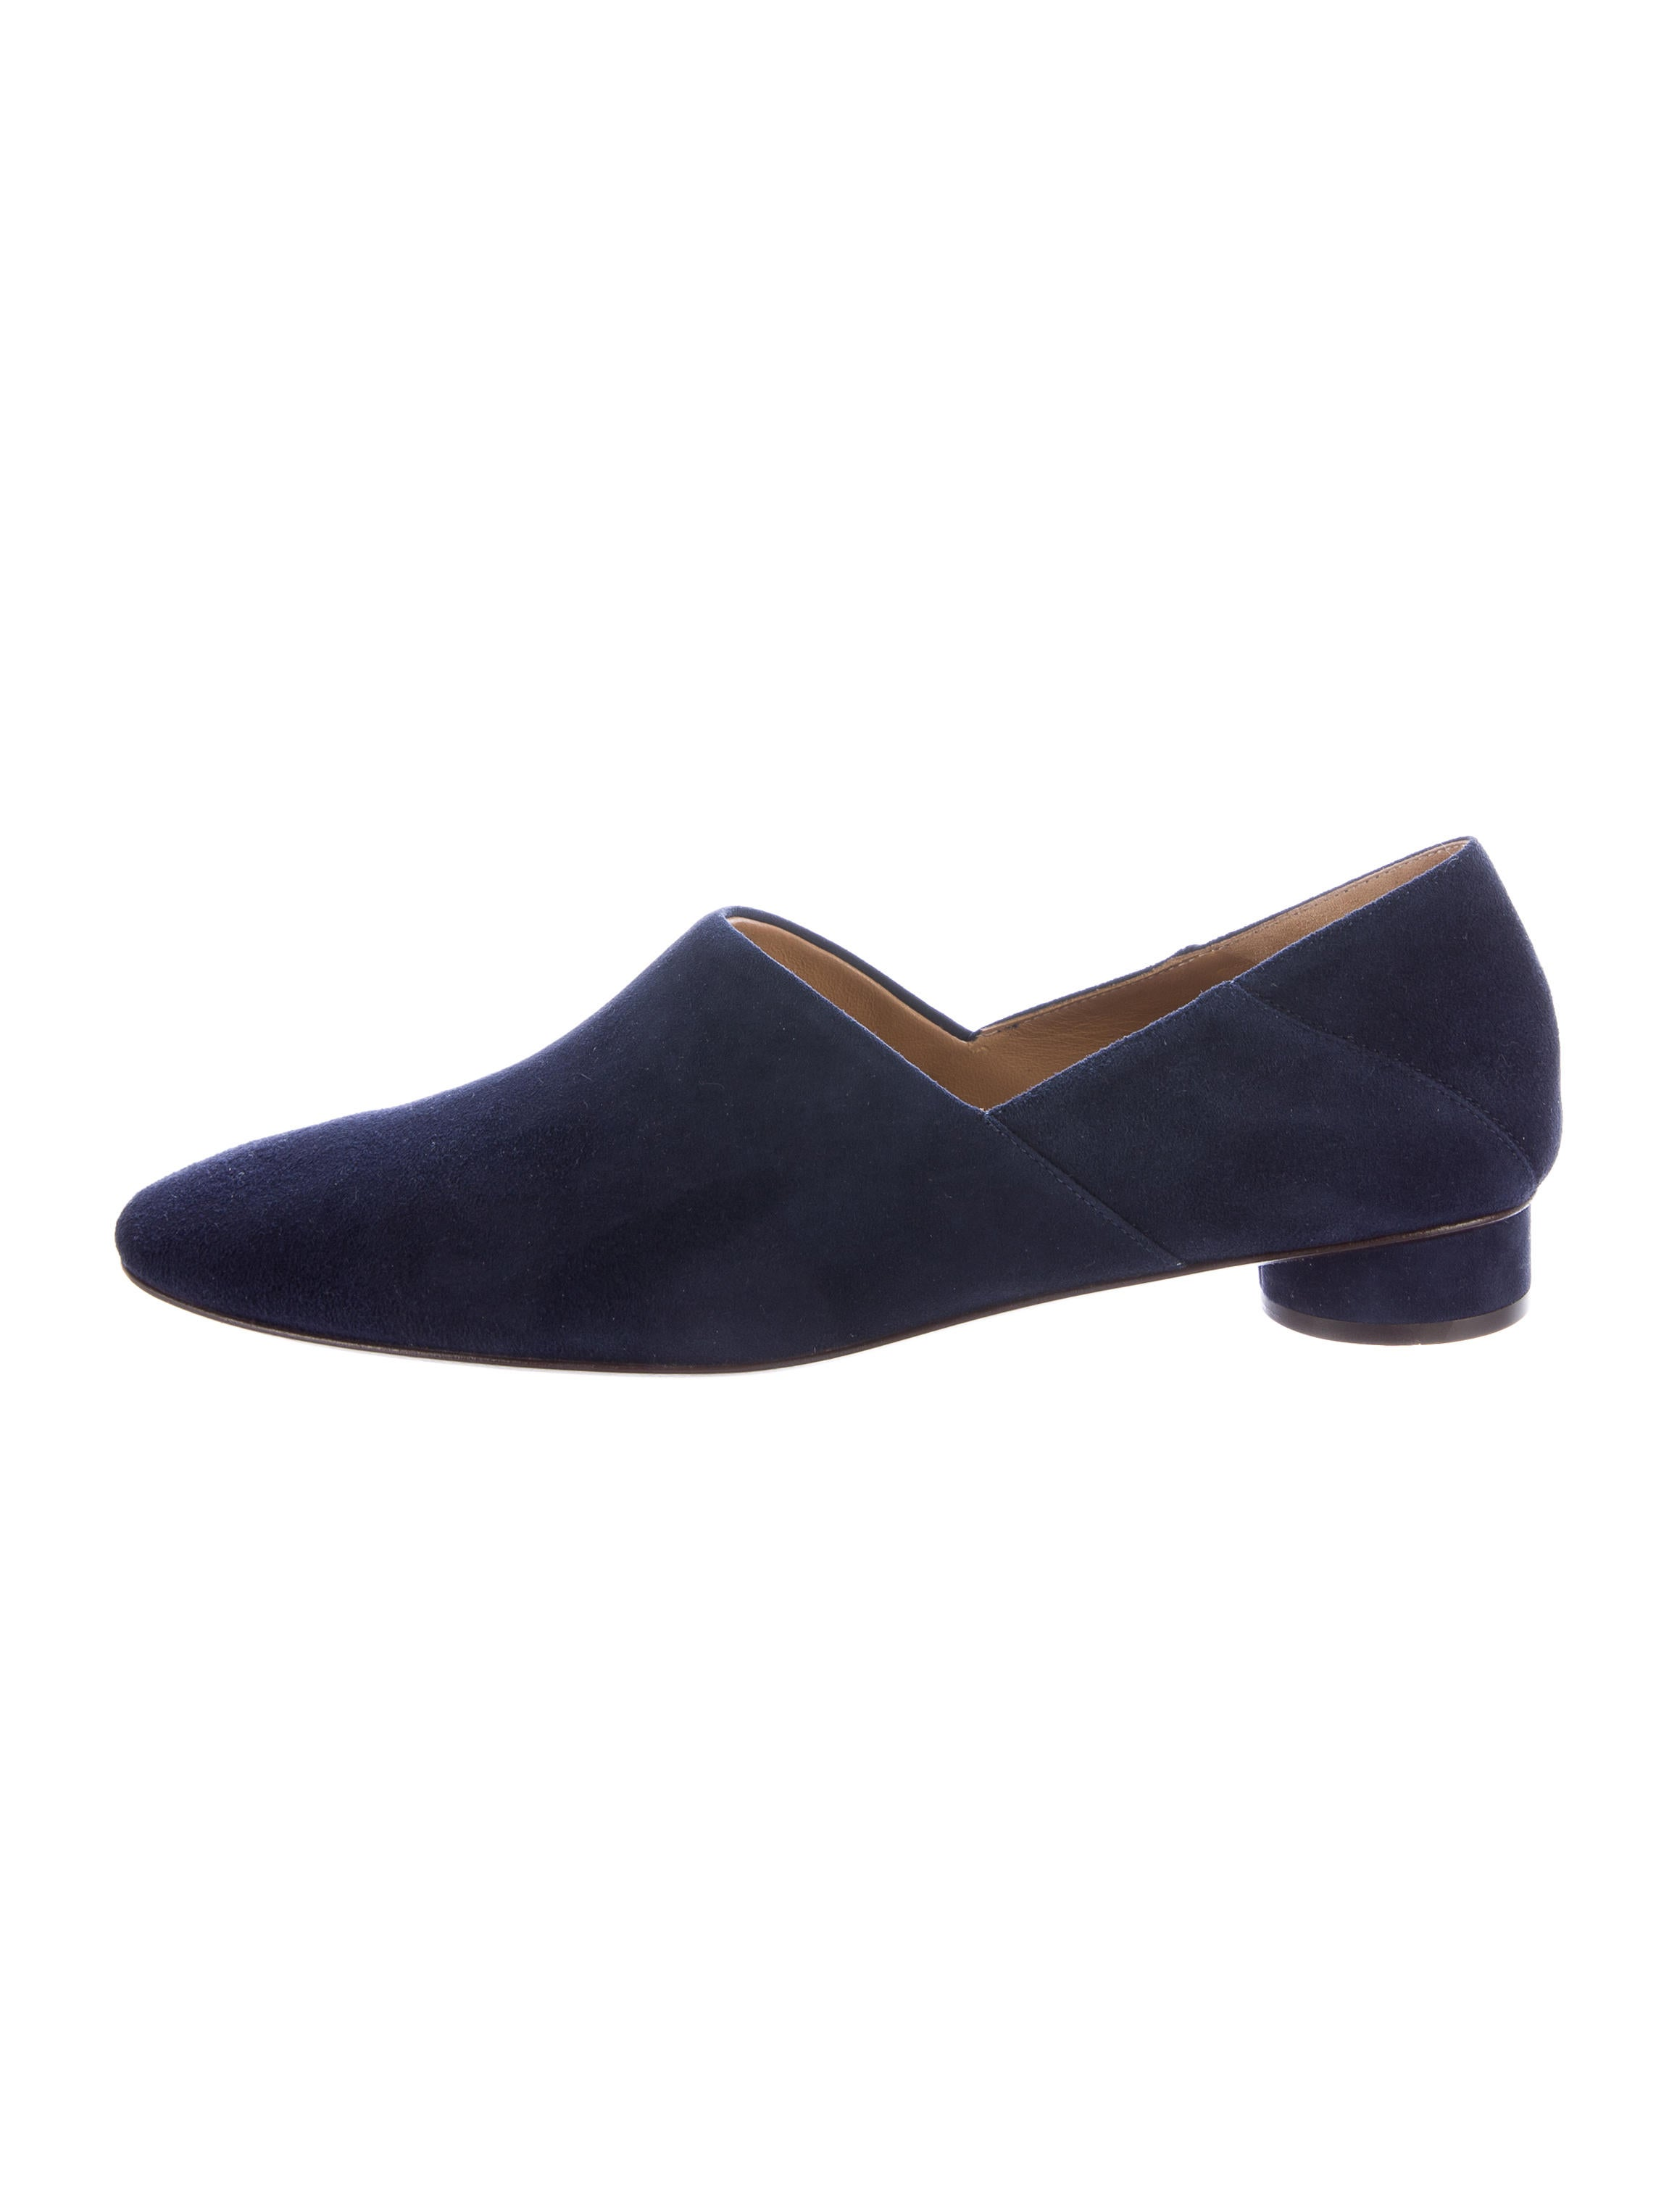 The Row Noelle Suede Loafers w/ Tags discount wide range of Z0KAON